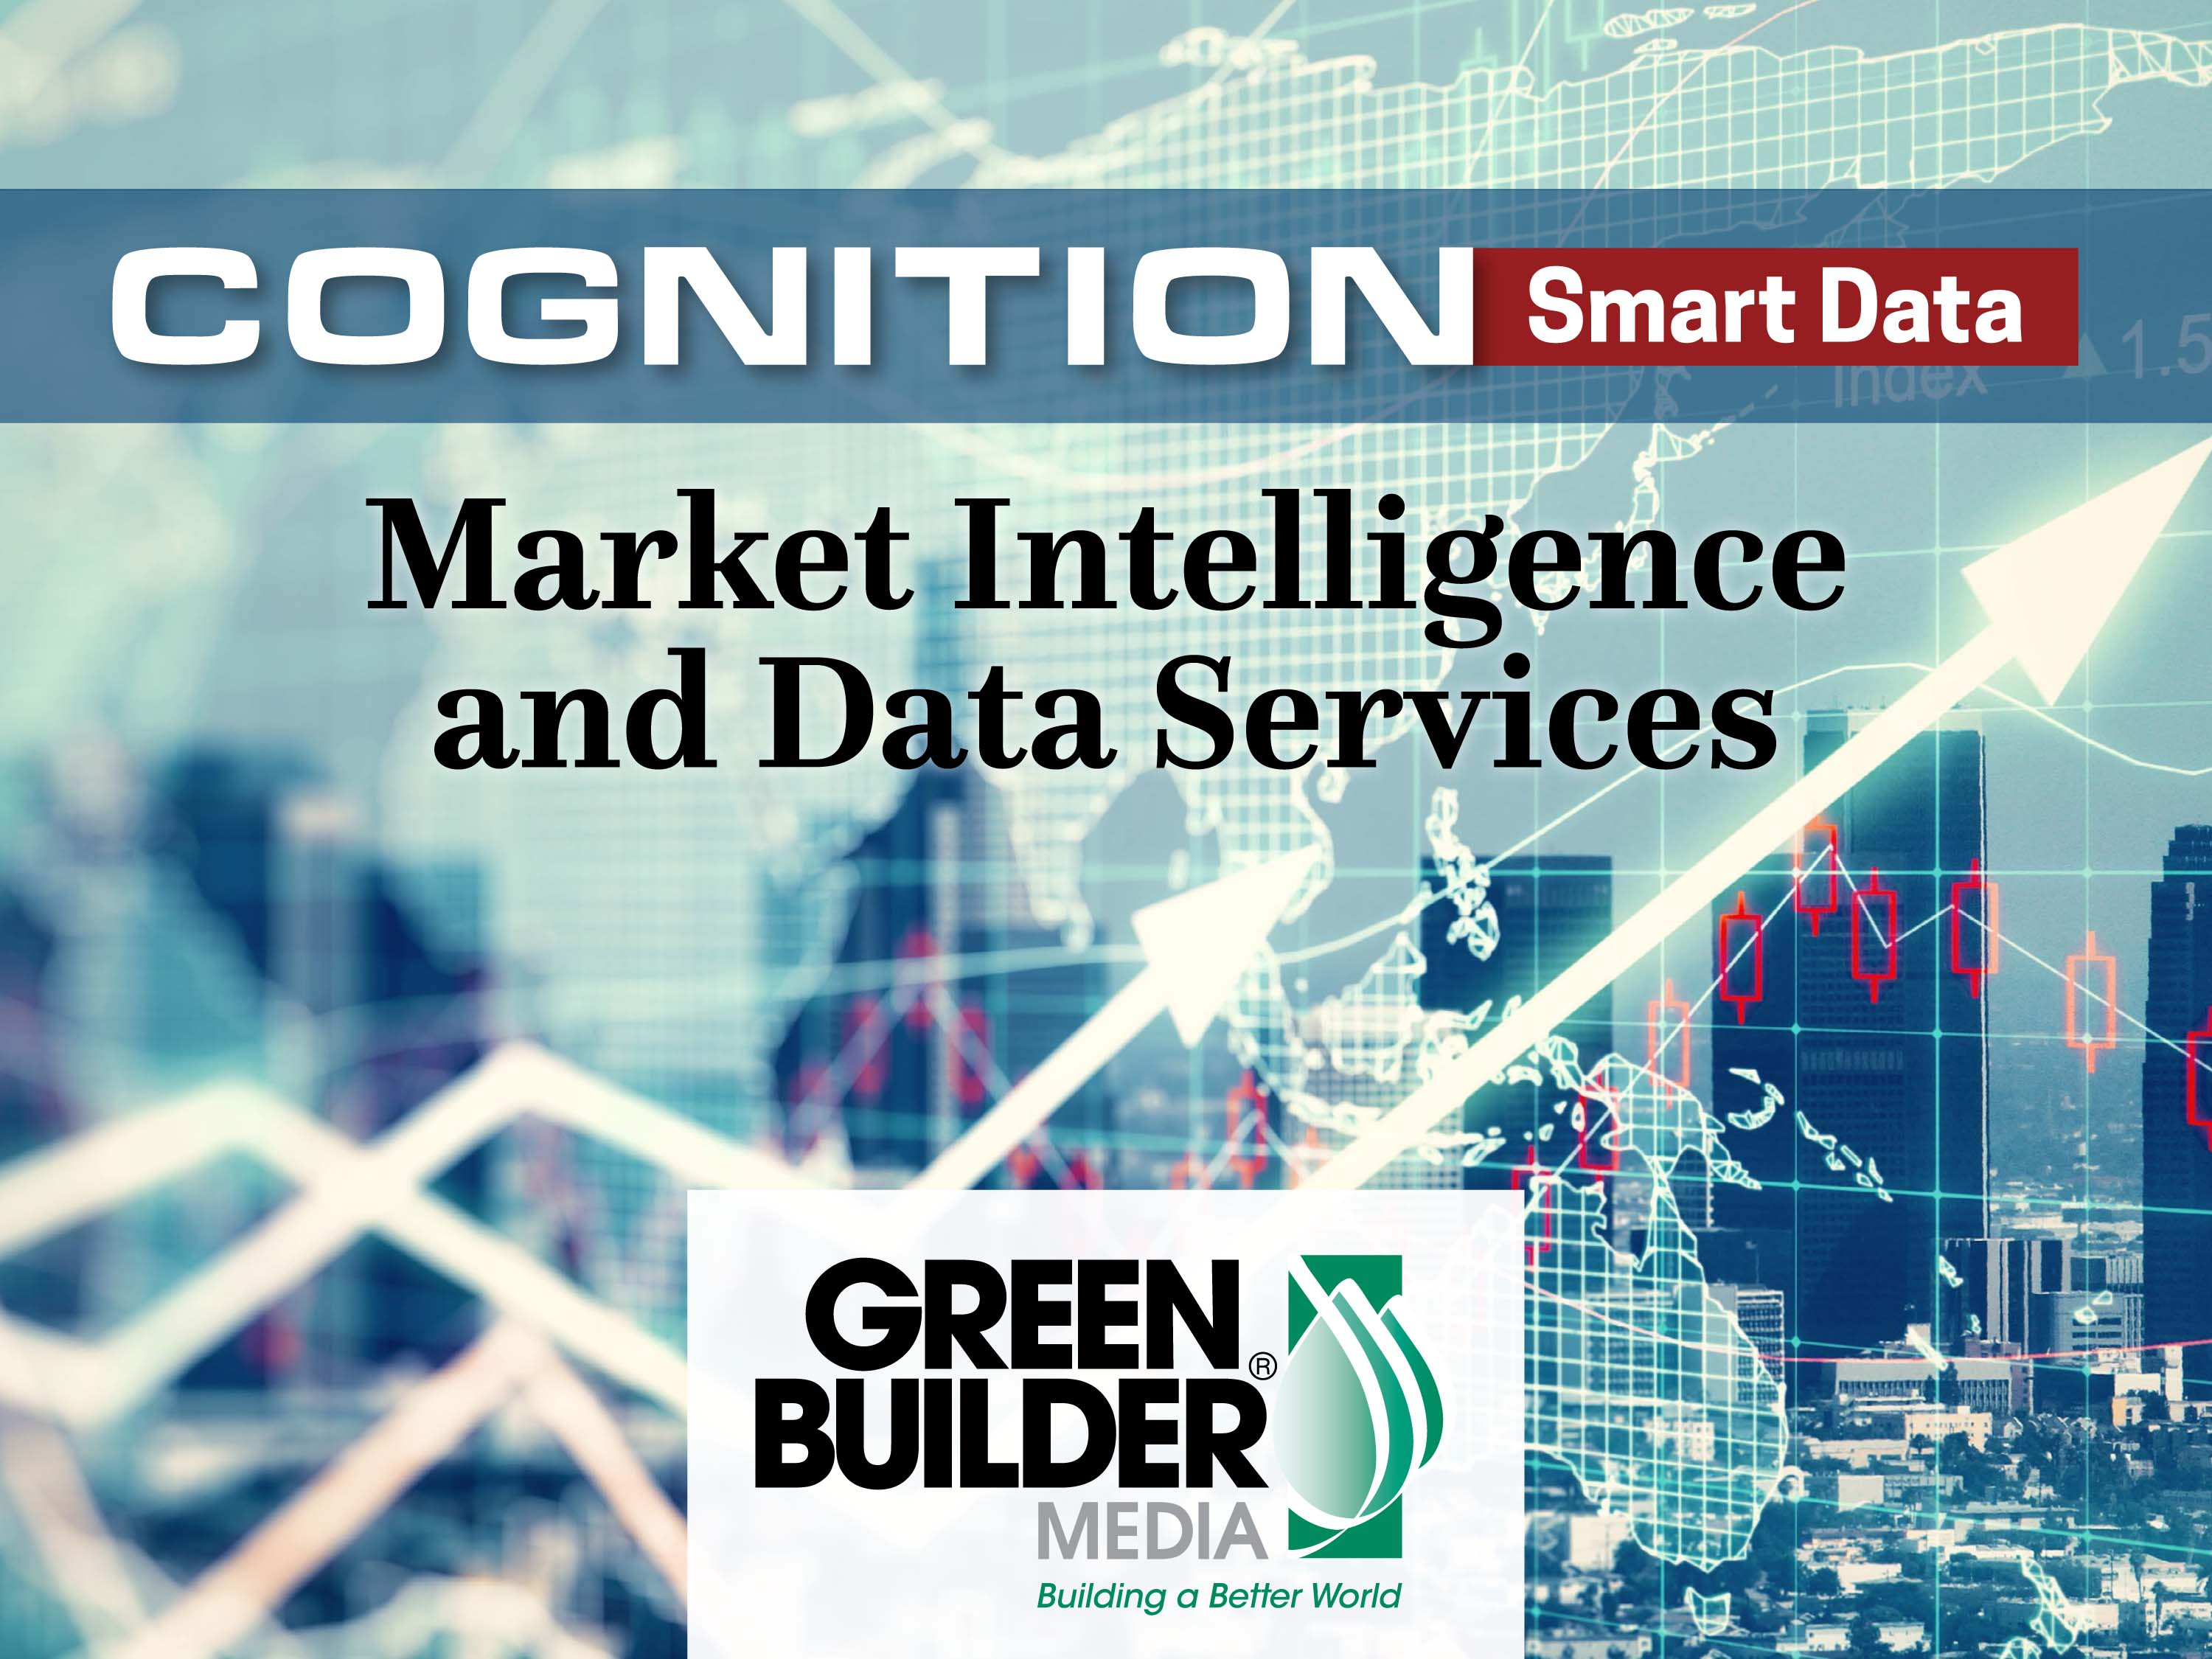 COGNITION Smart Data